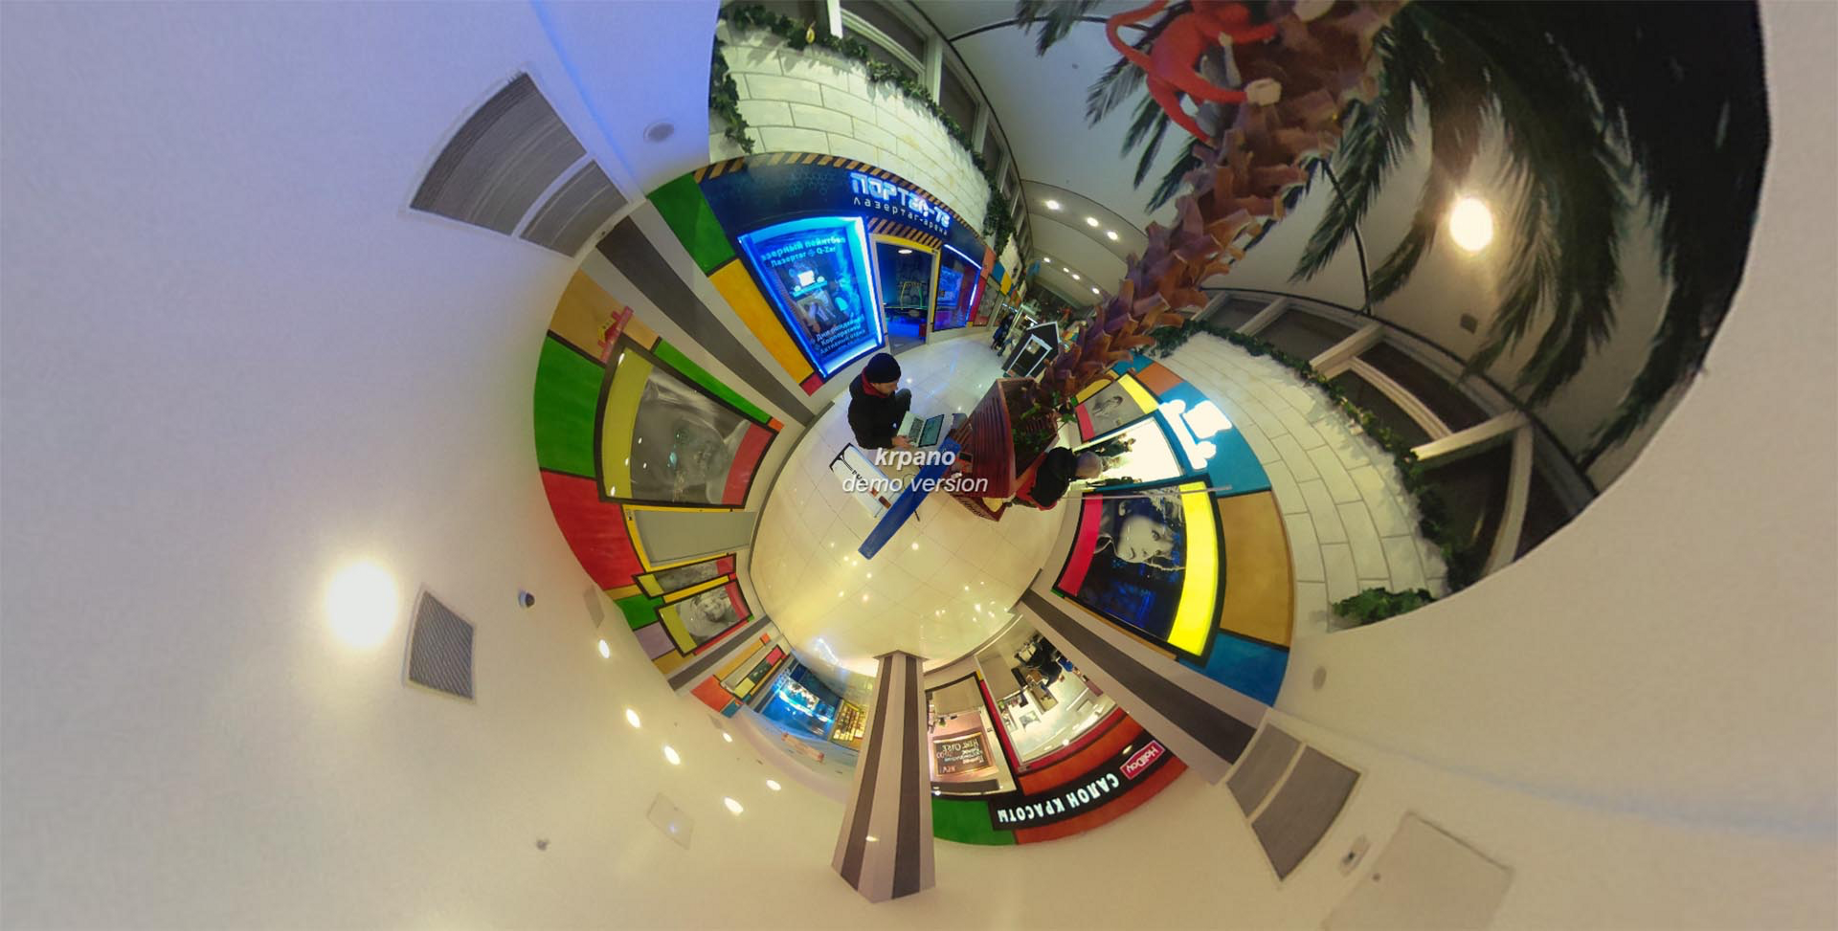 Stitching 360 panorama with Raspberry Pi CM3, StereoPi and two